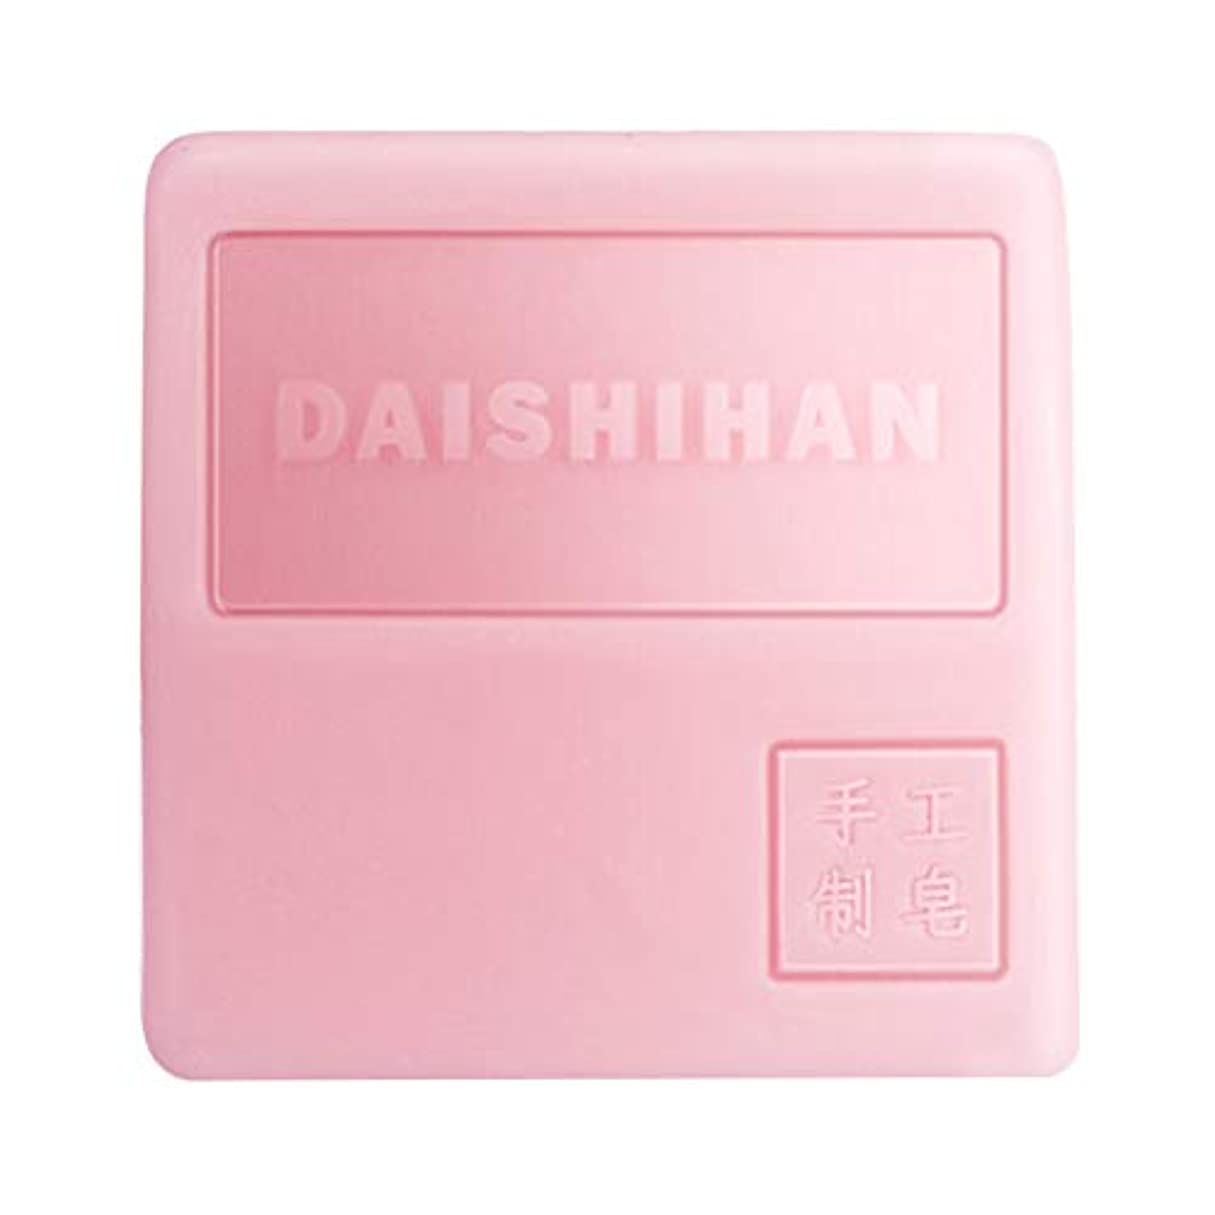 フラスコラウズ思いやりTOPBATHY Skin Whitening Soap Body Natural Handmade Soap Bar Women Private Body Bath Shower